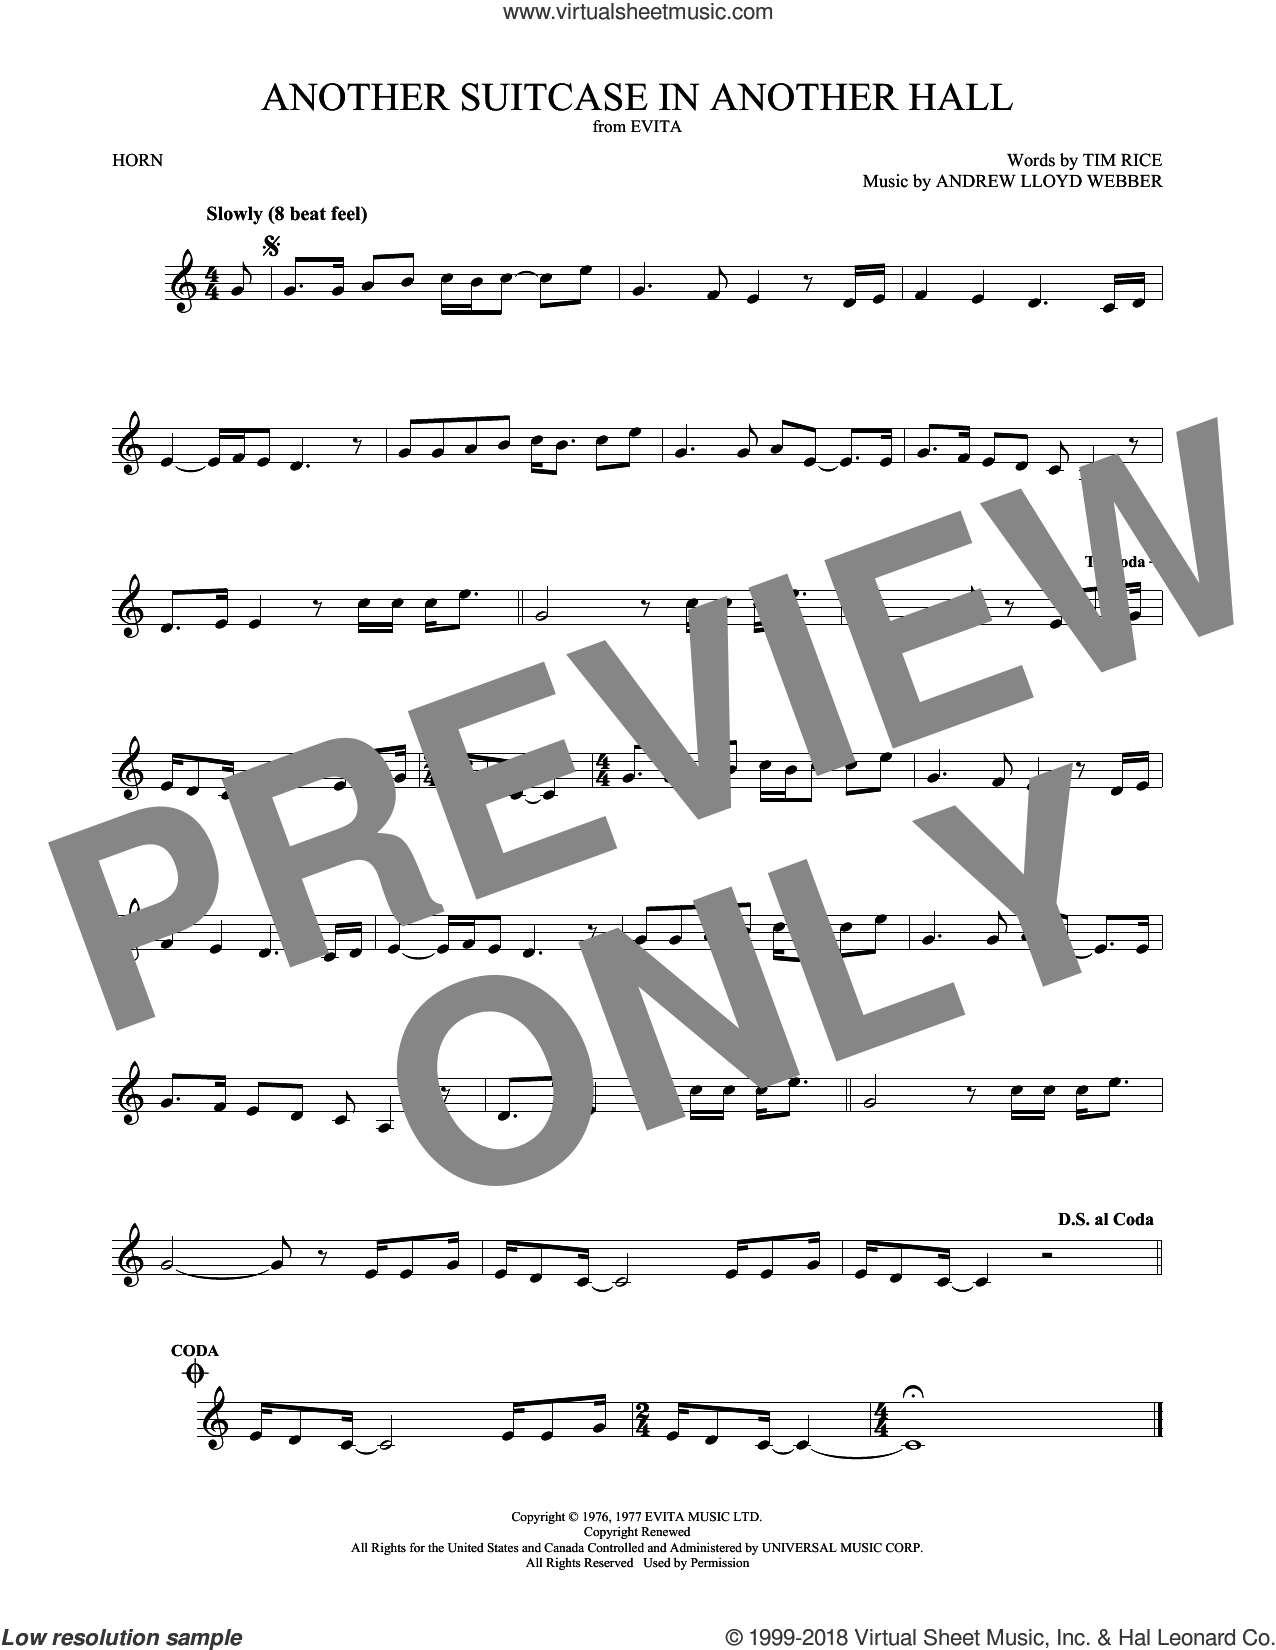 Another Suitcase In Another Hall sheet music for horn solo by Andrew Lloyd Webber and Tim Rice, intermediate skill level